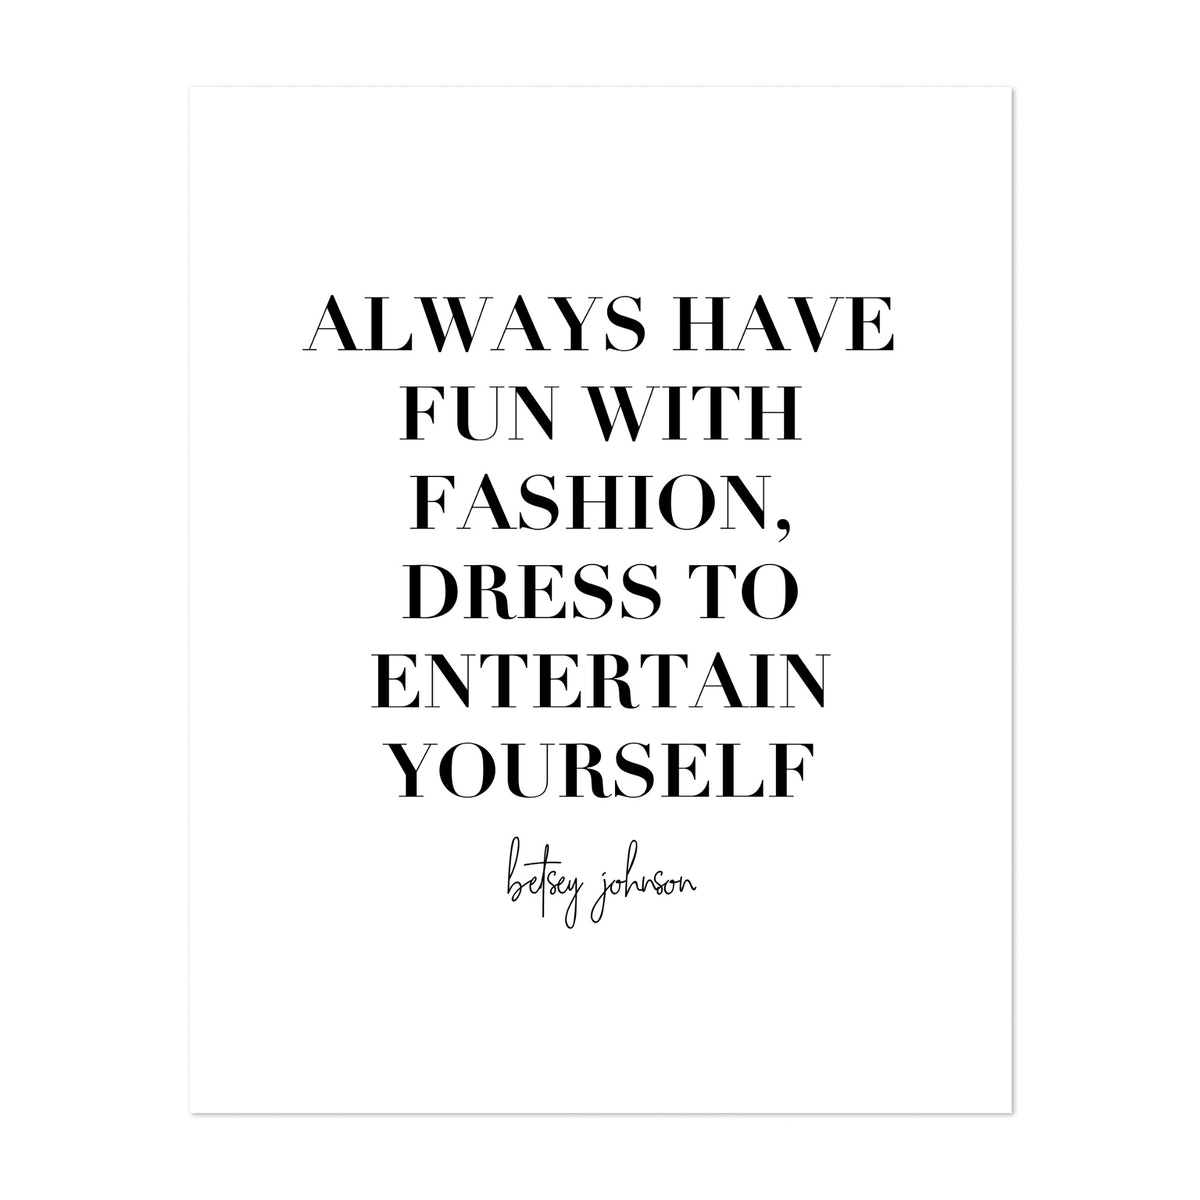 Always Have Fun with Fashion, Dress to Entertain Yourself. -Betsey Johnson Quote